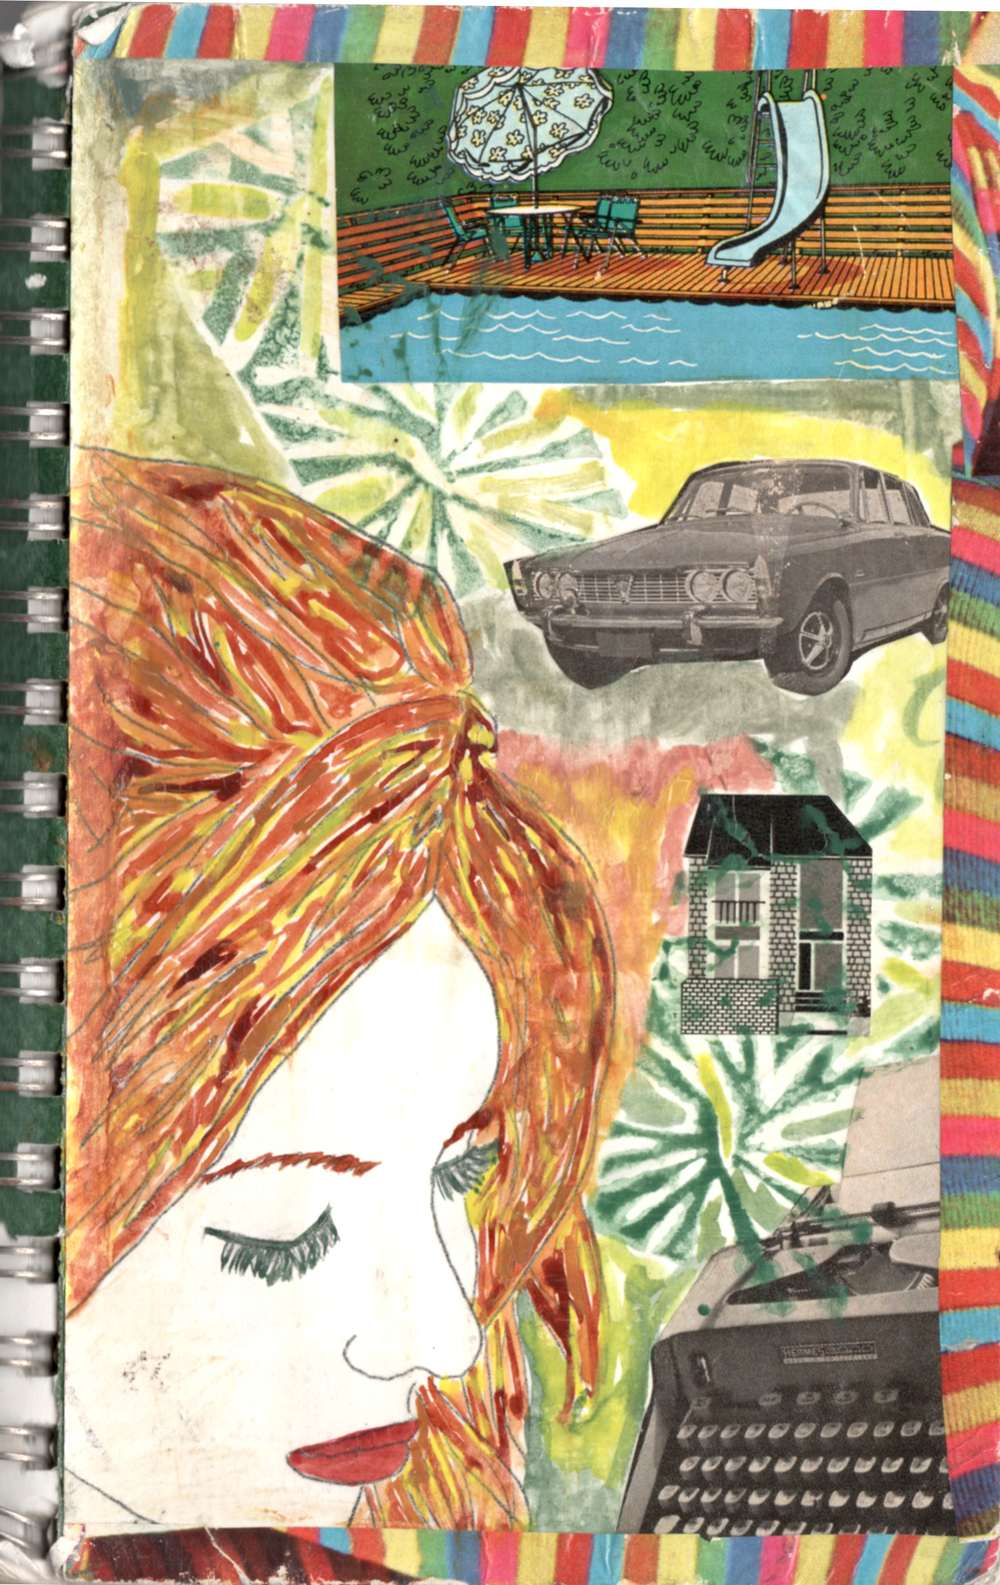 lady face cover mixed media collage nicole stevenson studio.jpg